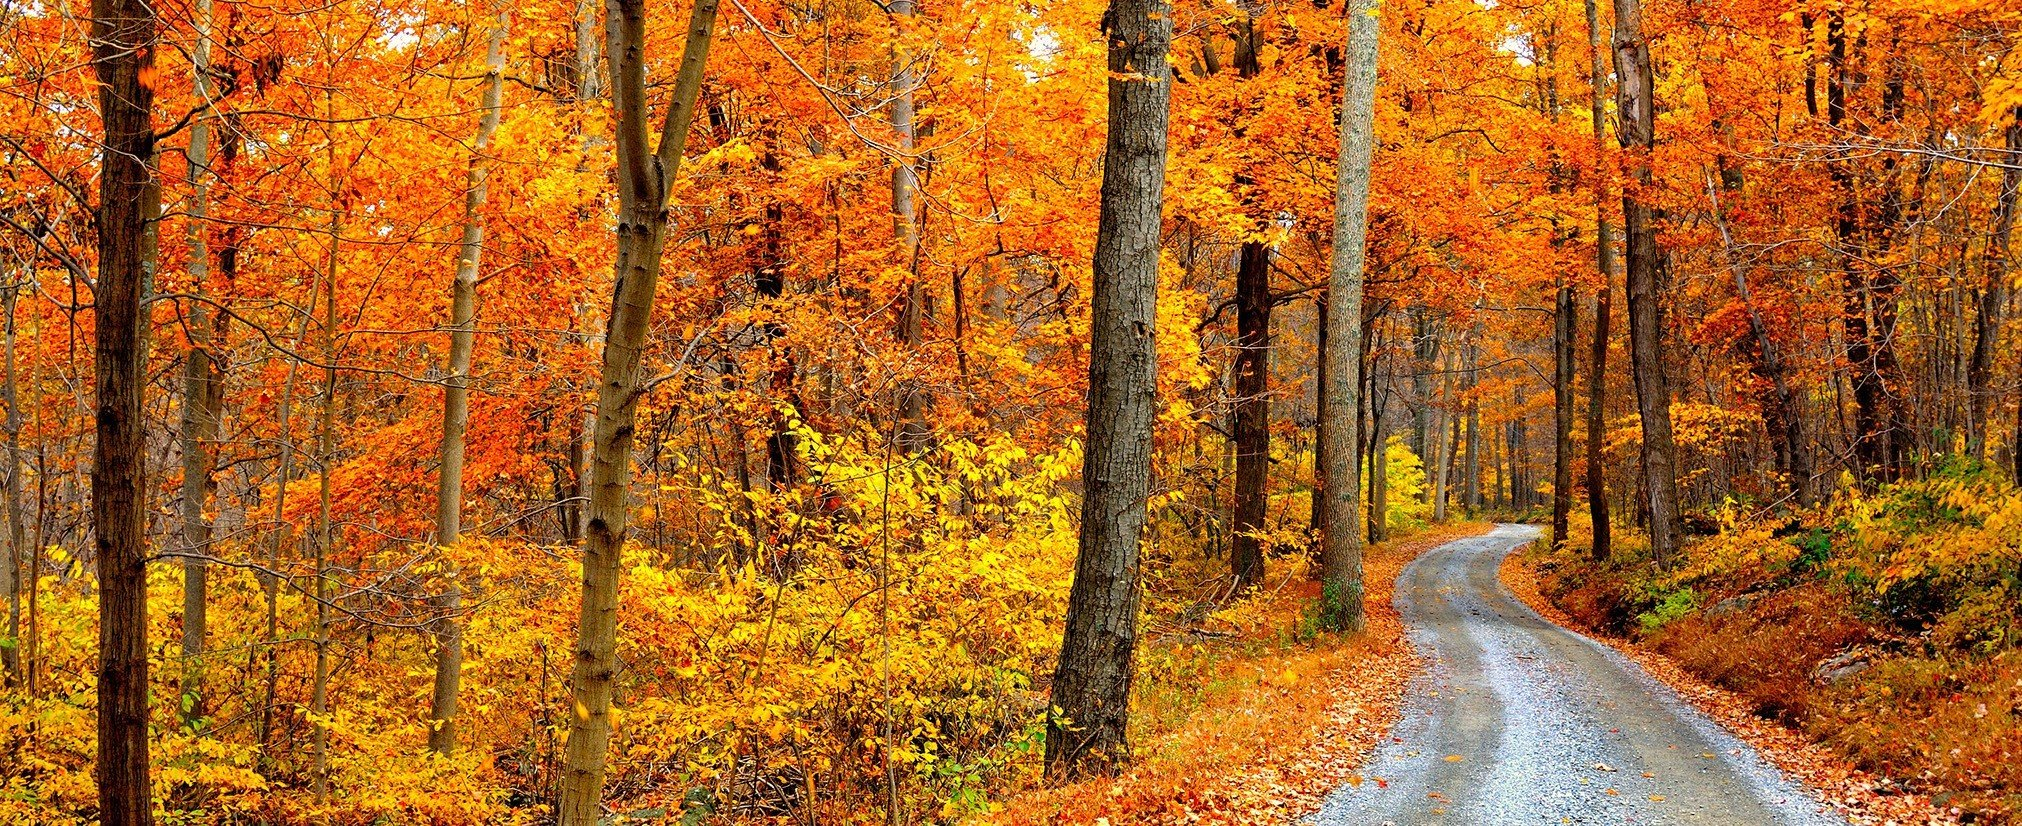 Trip Ideas tree grass habitat outdoor Forest natural environment autumn season ecosystem plant leaf wooded woodland temperate broadleaf and mixed forest park land plant wood deciduous poplar larch area lush